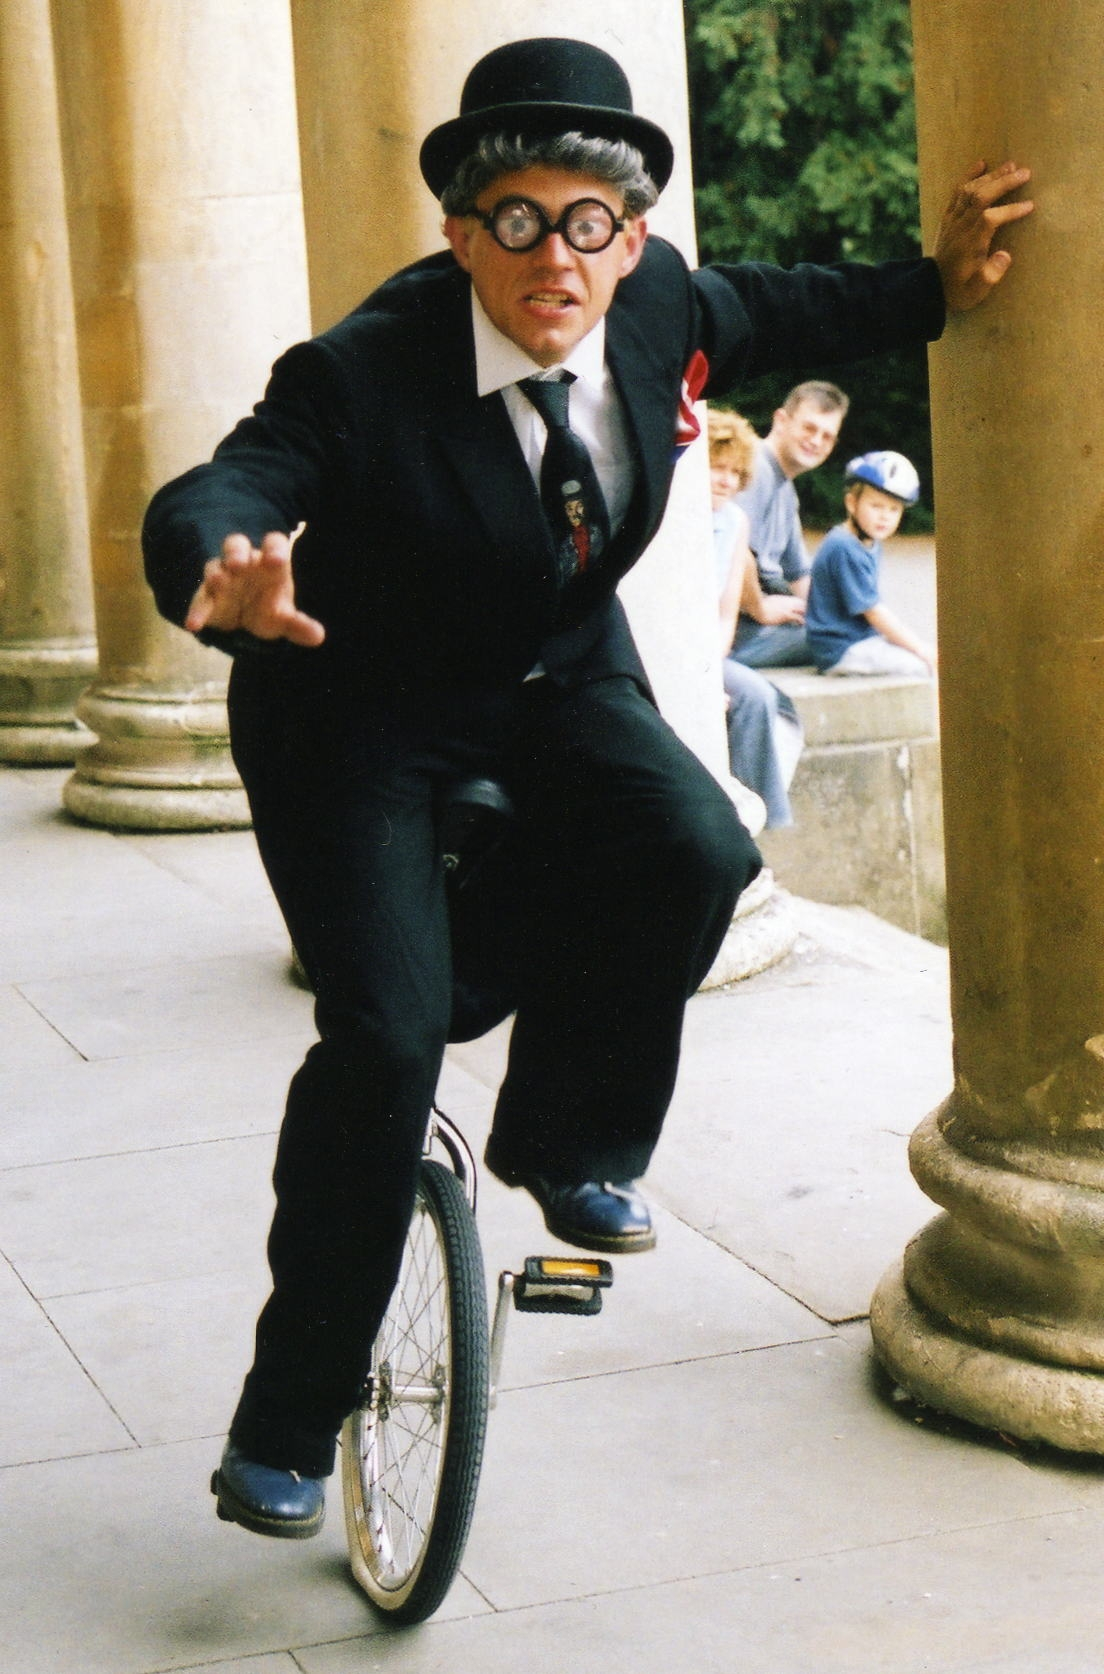 Thomas Trilby Unicyclist Juggler Gloucestershire